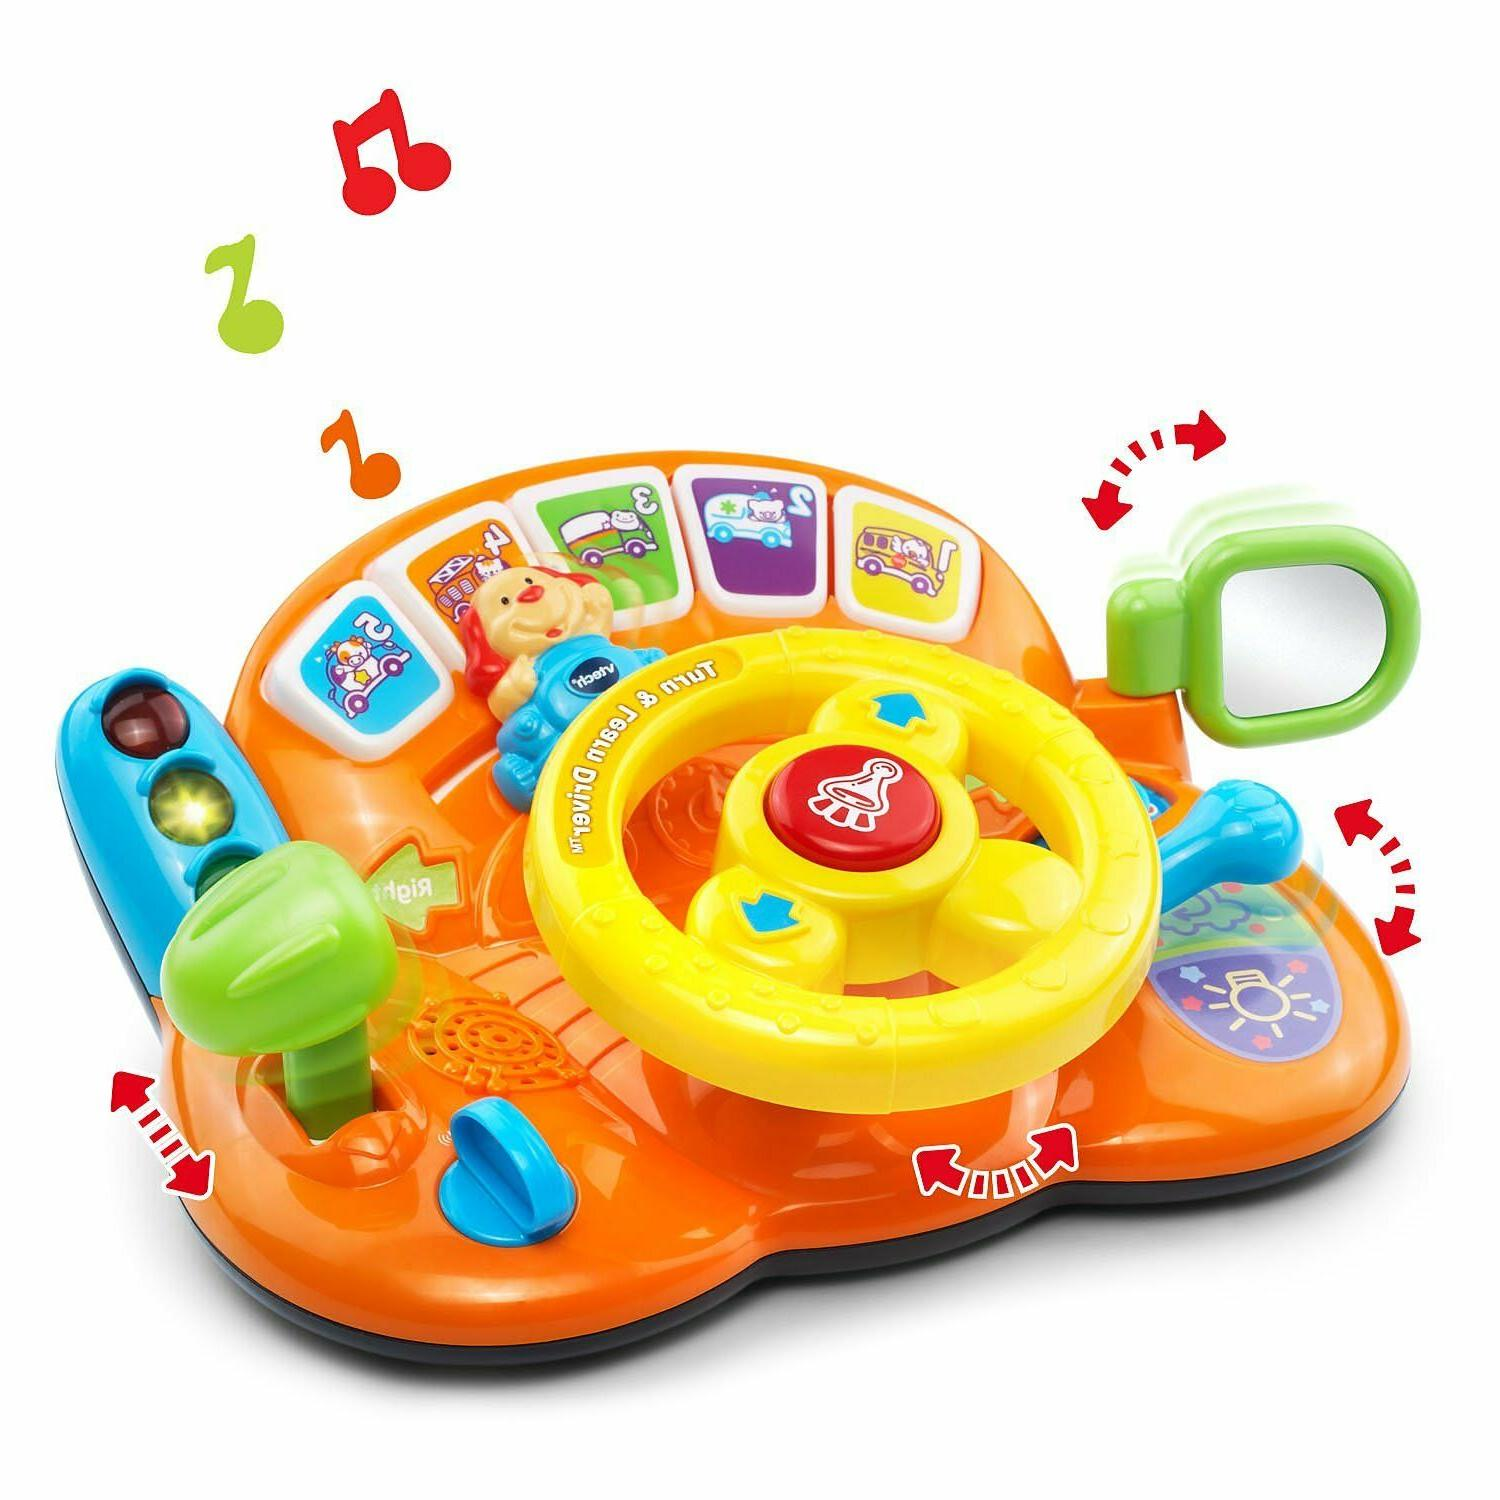 VTech Turn and Learn Driver Orange Online Exclusive